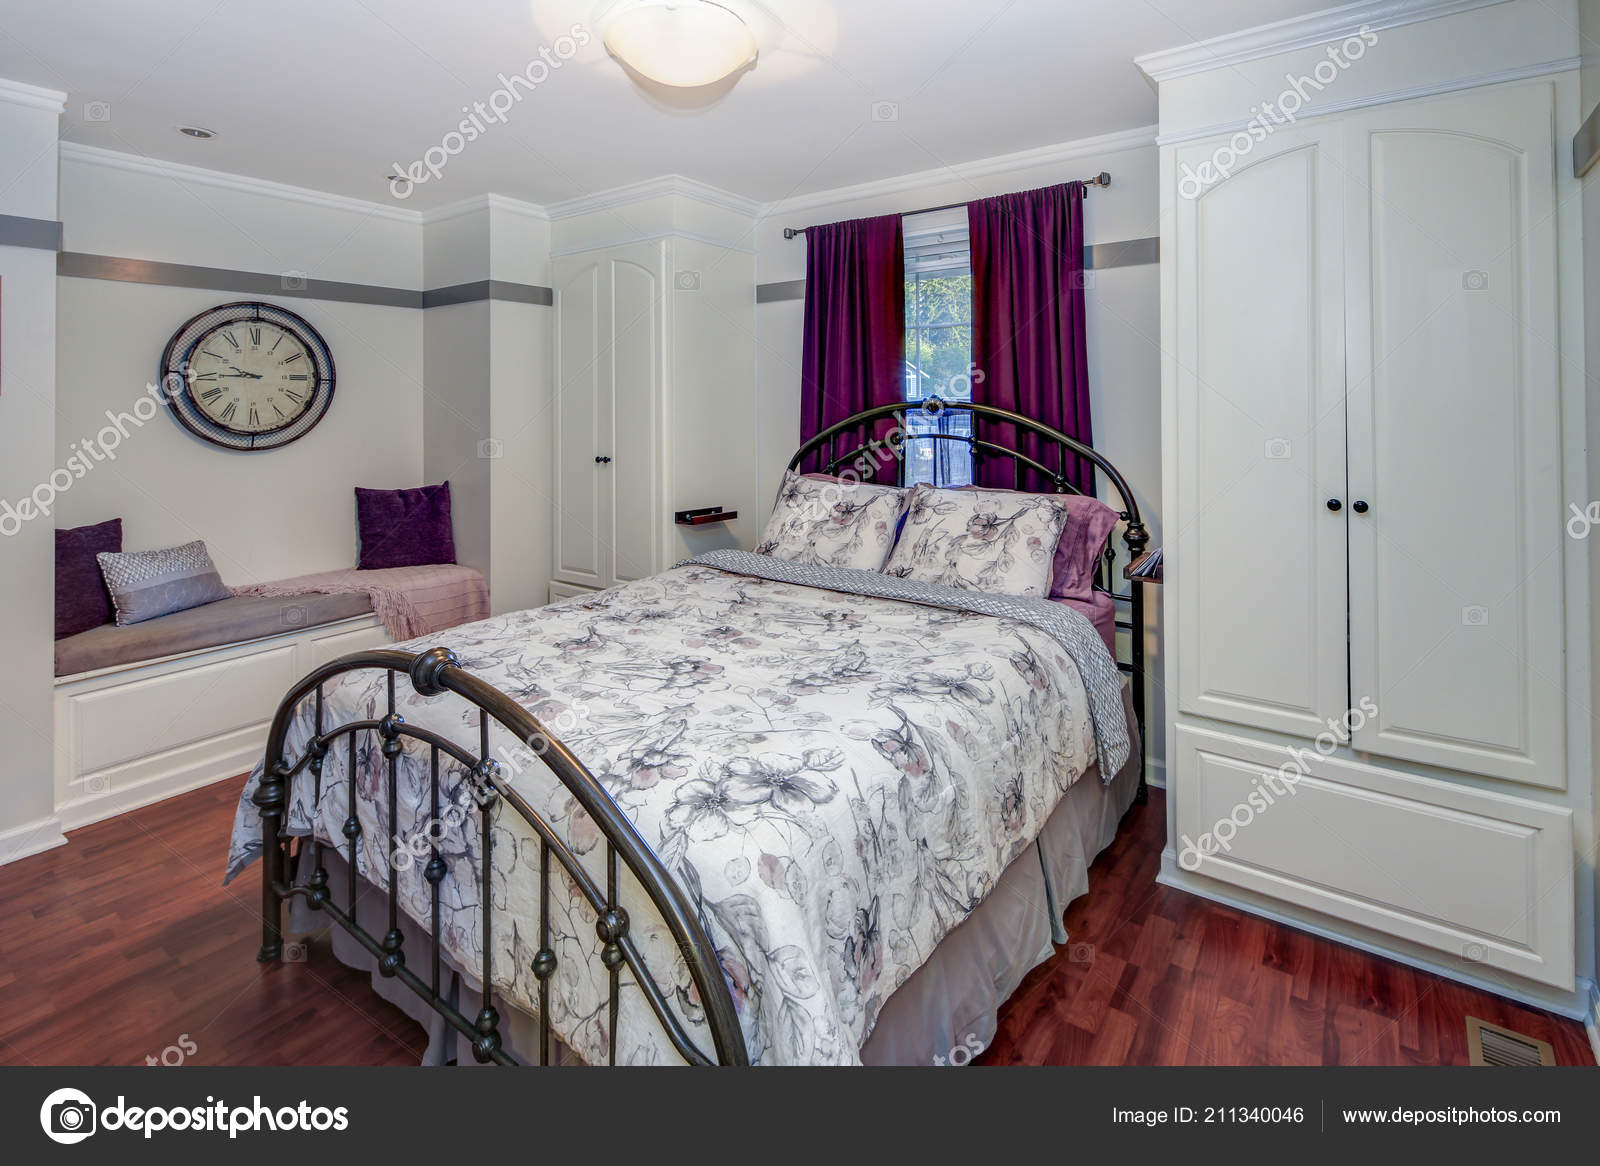 White Purple Bedroom Interior Iron Bed Bench Built Cabinets ...